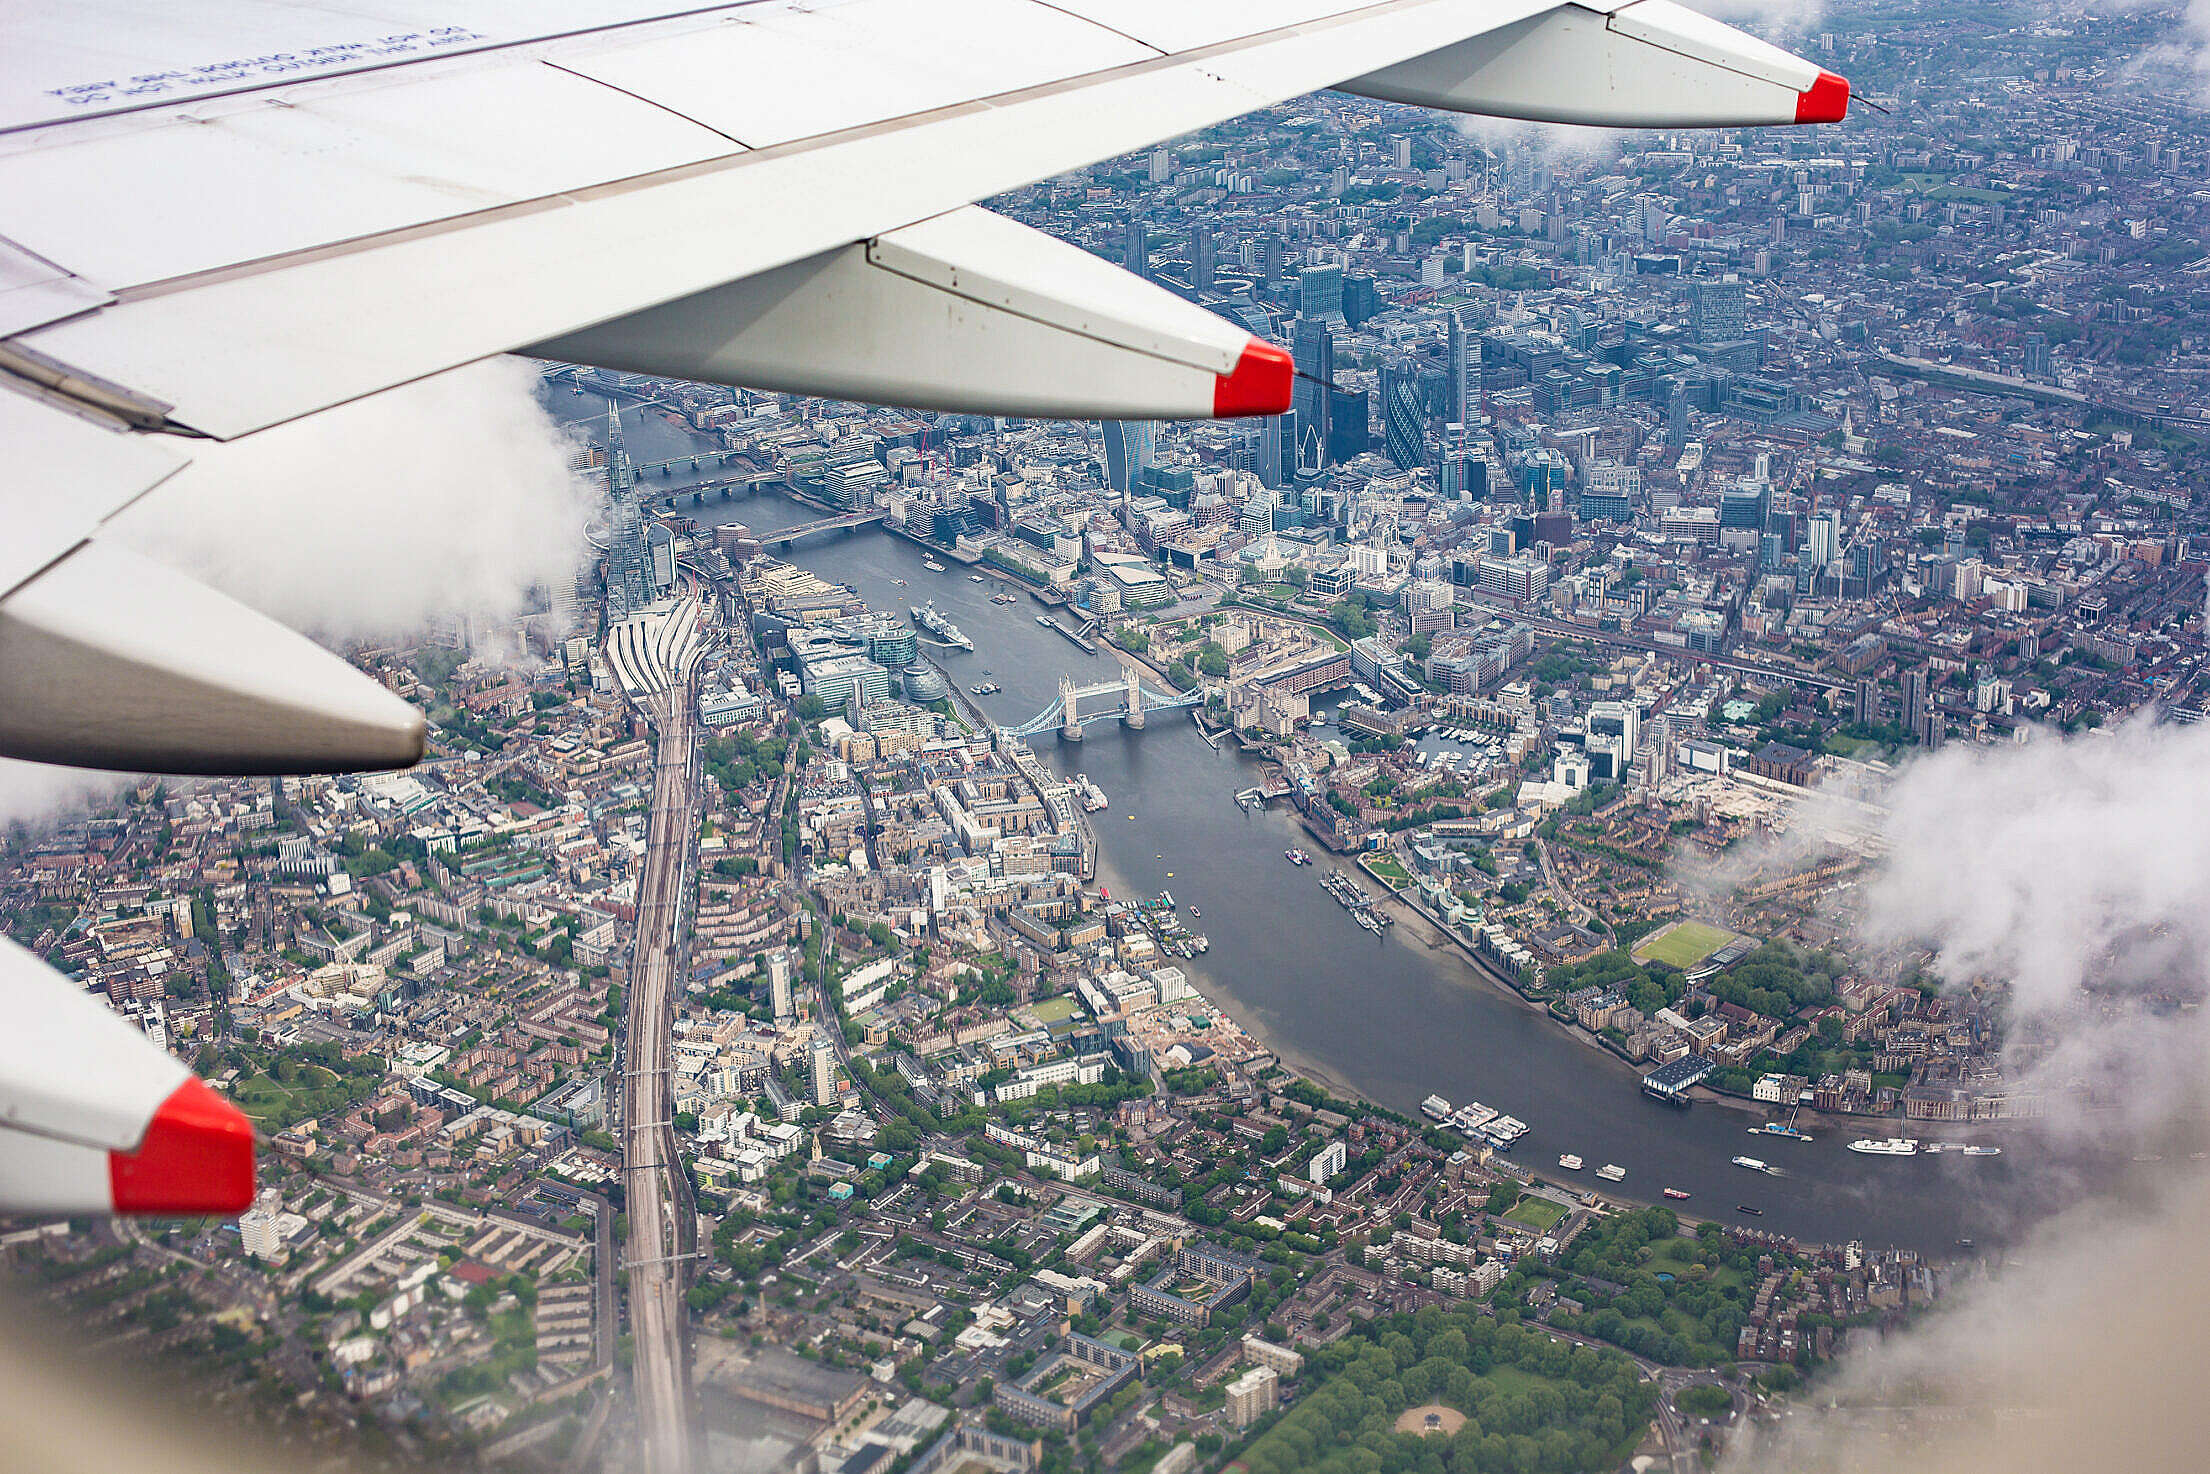 Center of London, UK from the Airplane Window Free Stock Photo